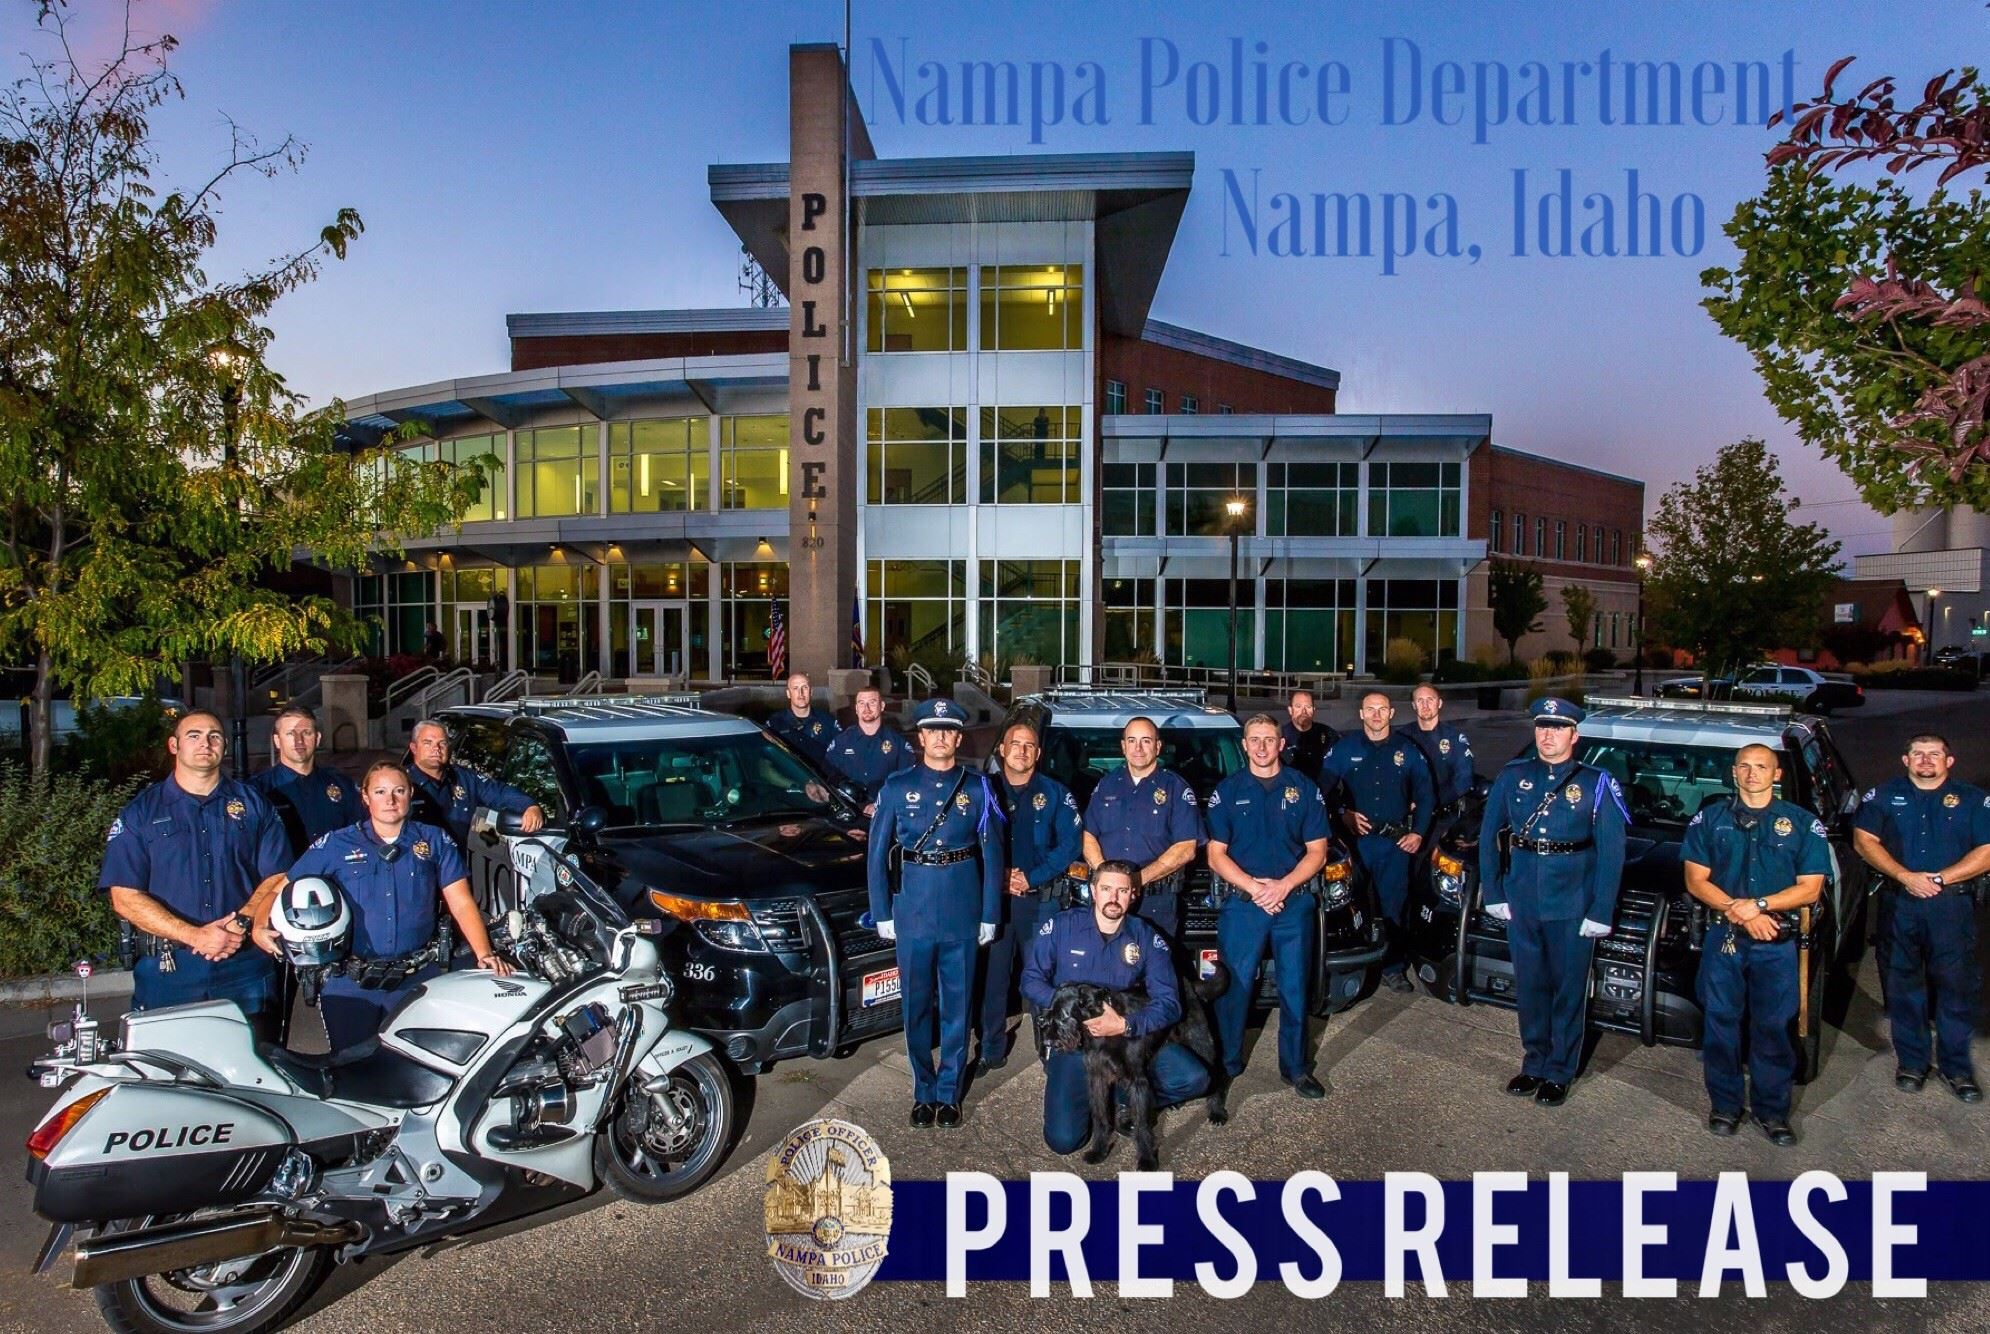 Several Nampa Police Officers in uniform in front of the Nampa Police Station and the words press re